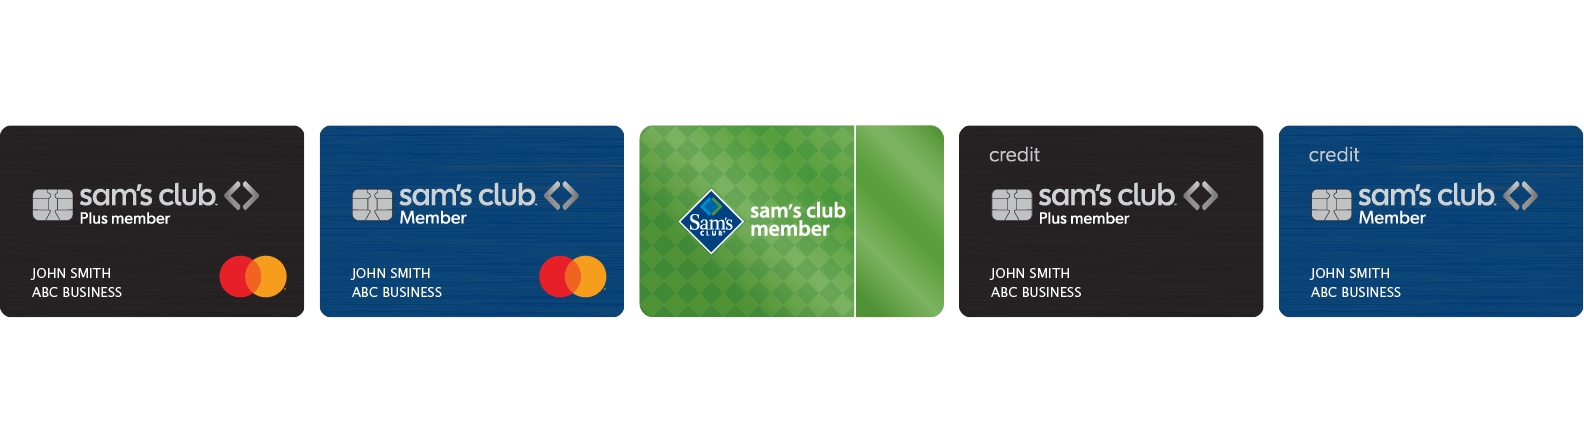 Sams online credit center manage your account online just log in to get started colourmoves